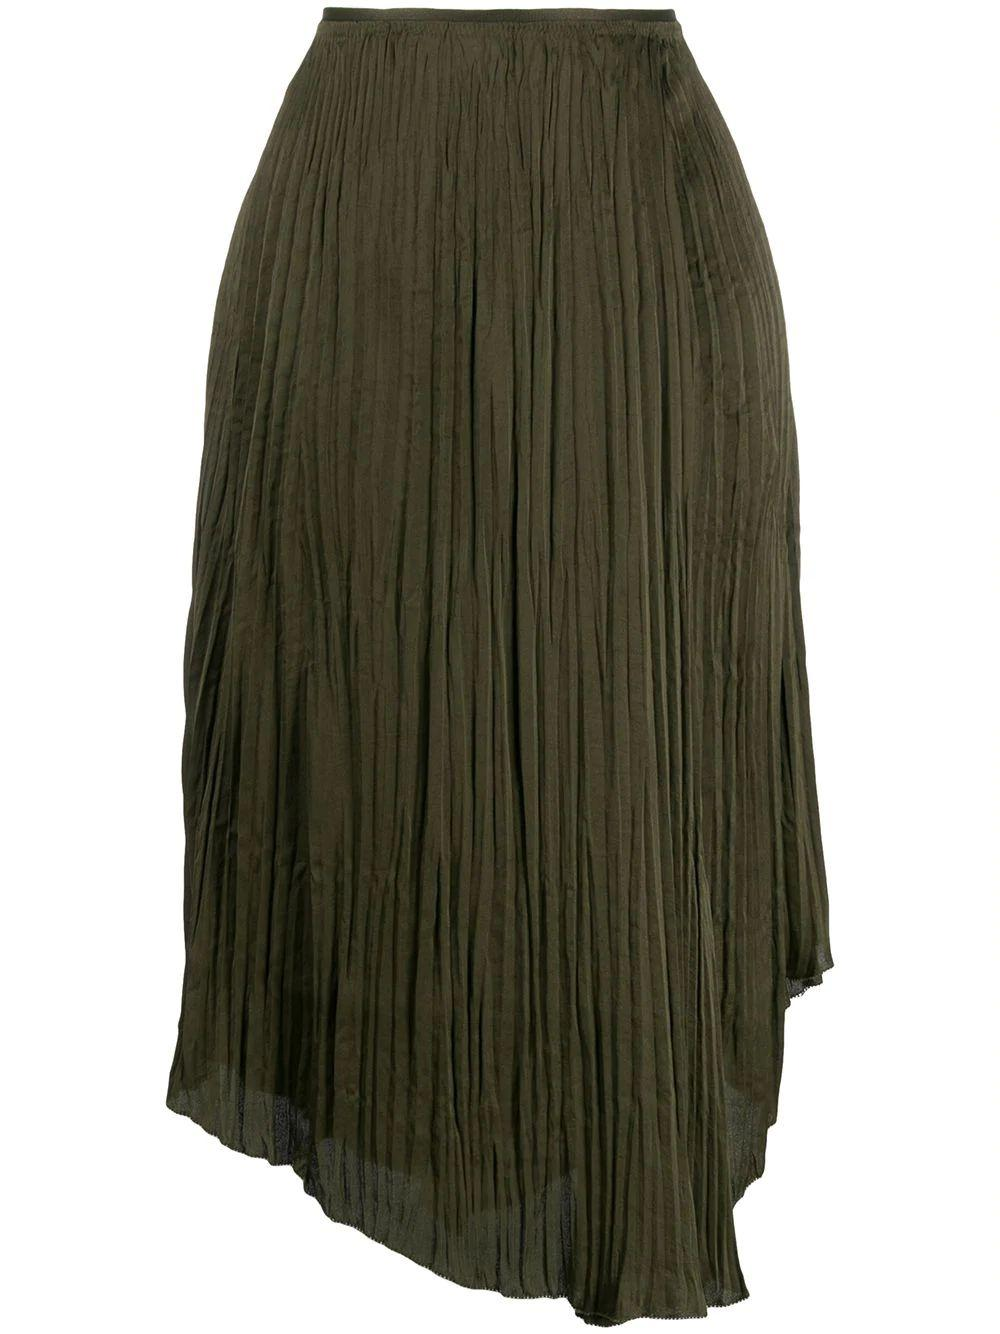 Crushed Drape Skirt